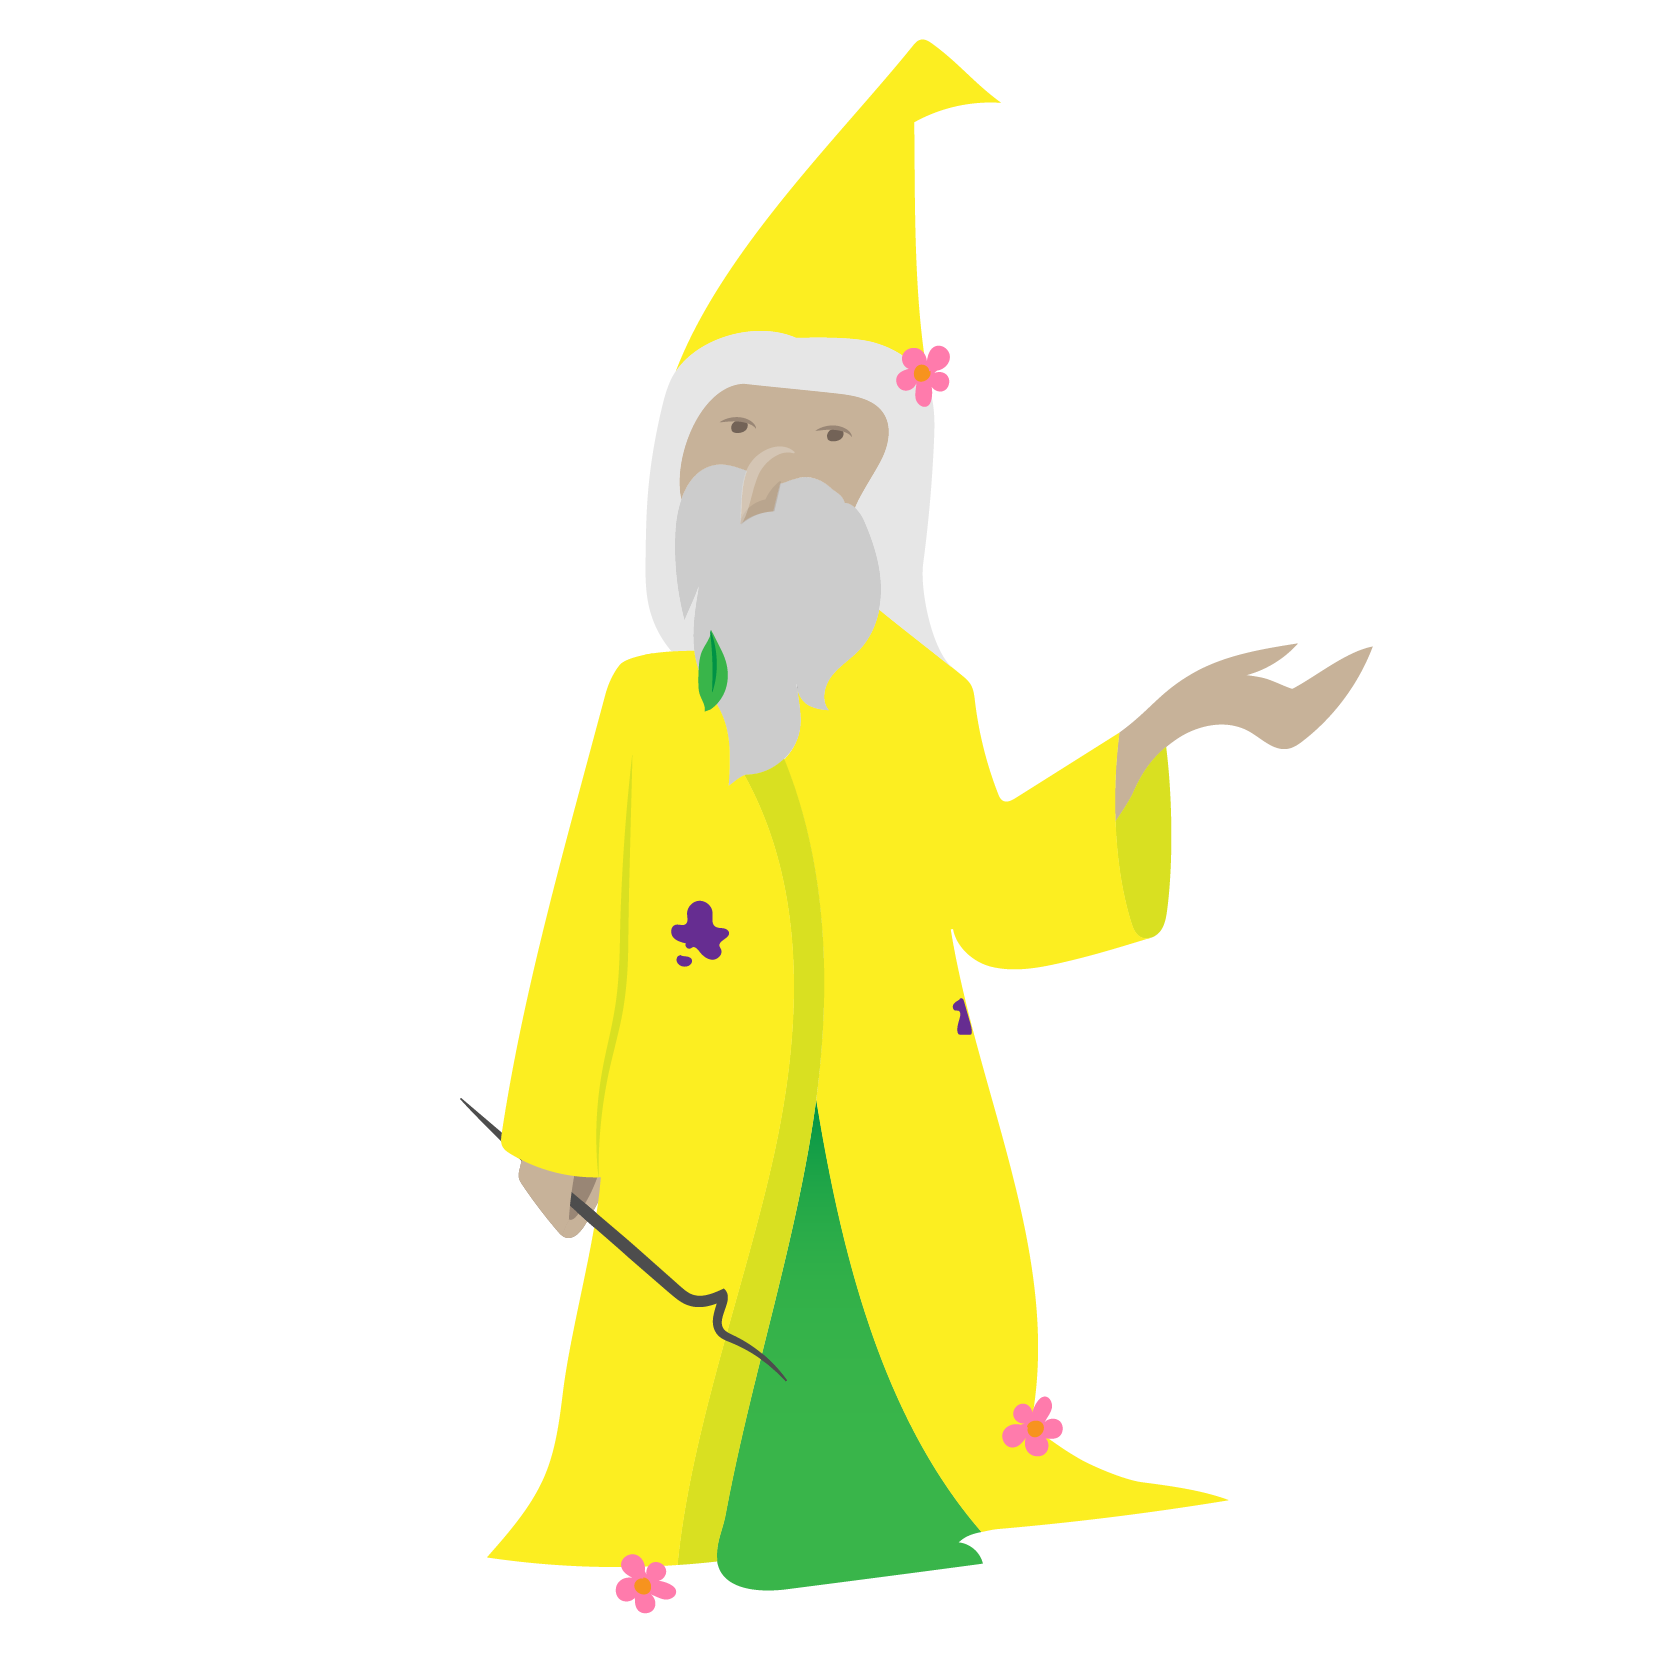 Wizard-02.png